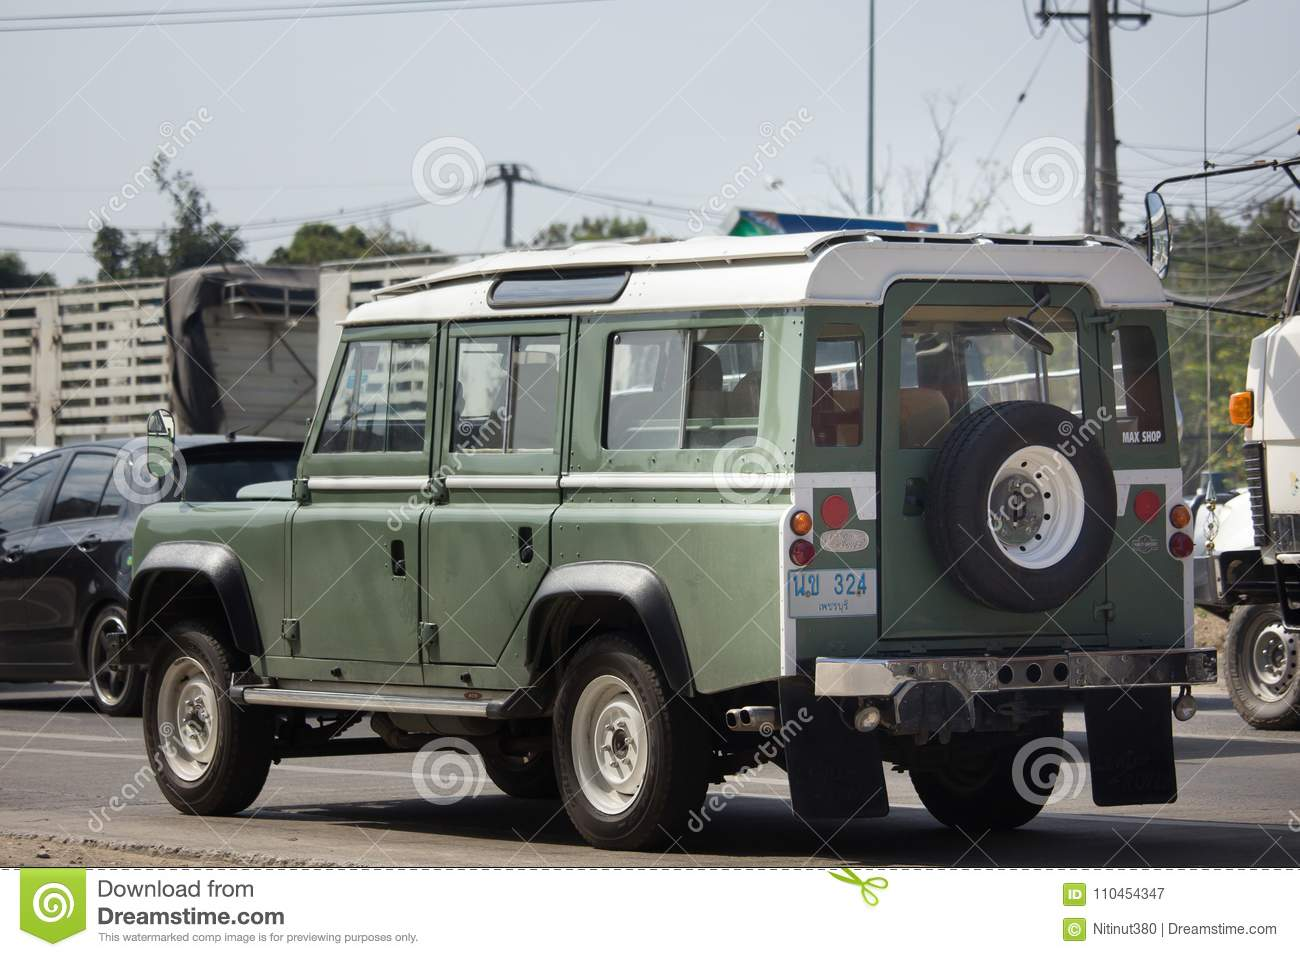 Personbil Land Rover Truck